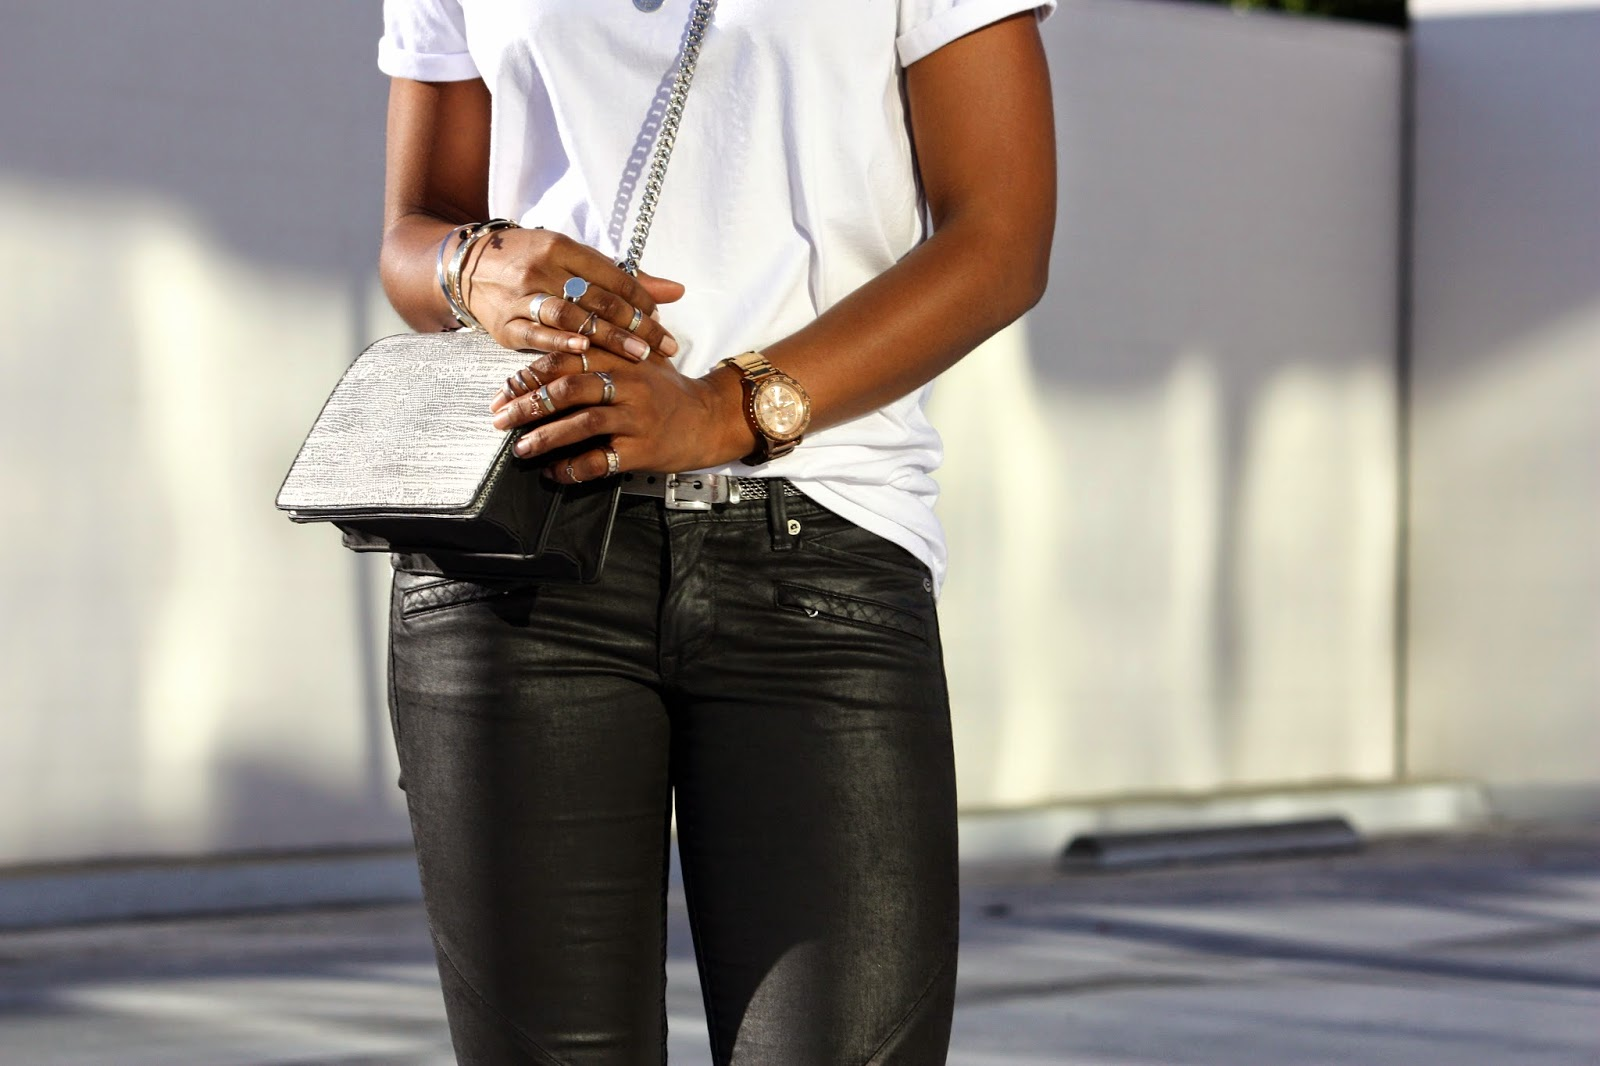 Wearing H&M crossbody bag Nixon rose-gold watch with assorted rings